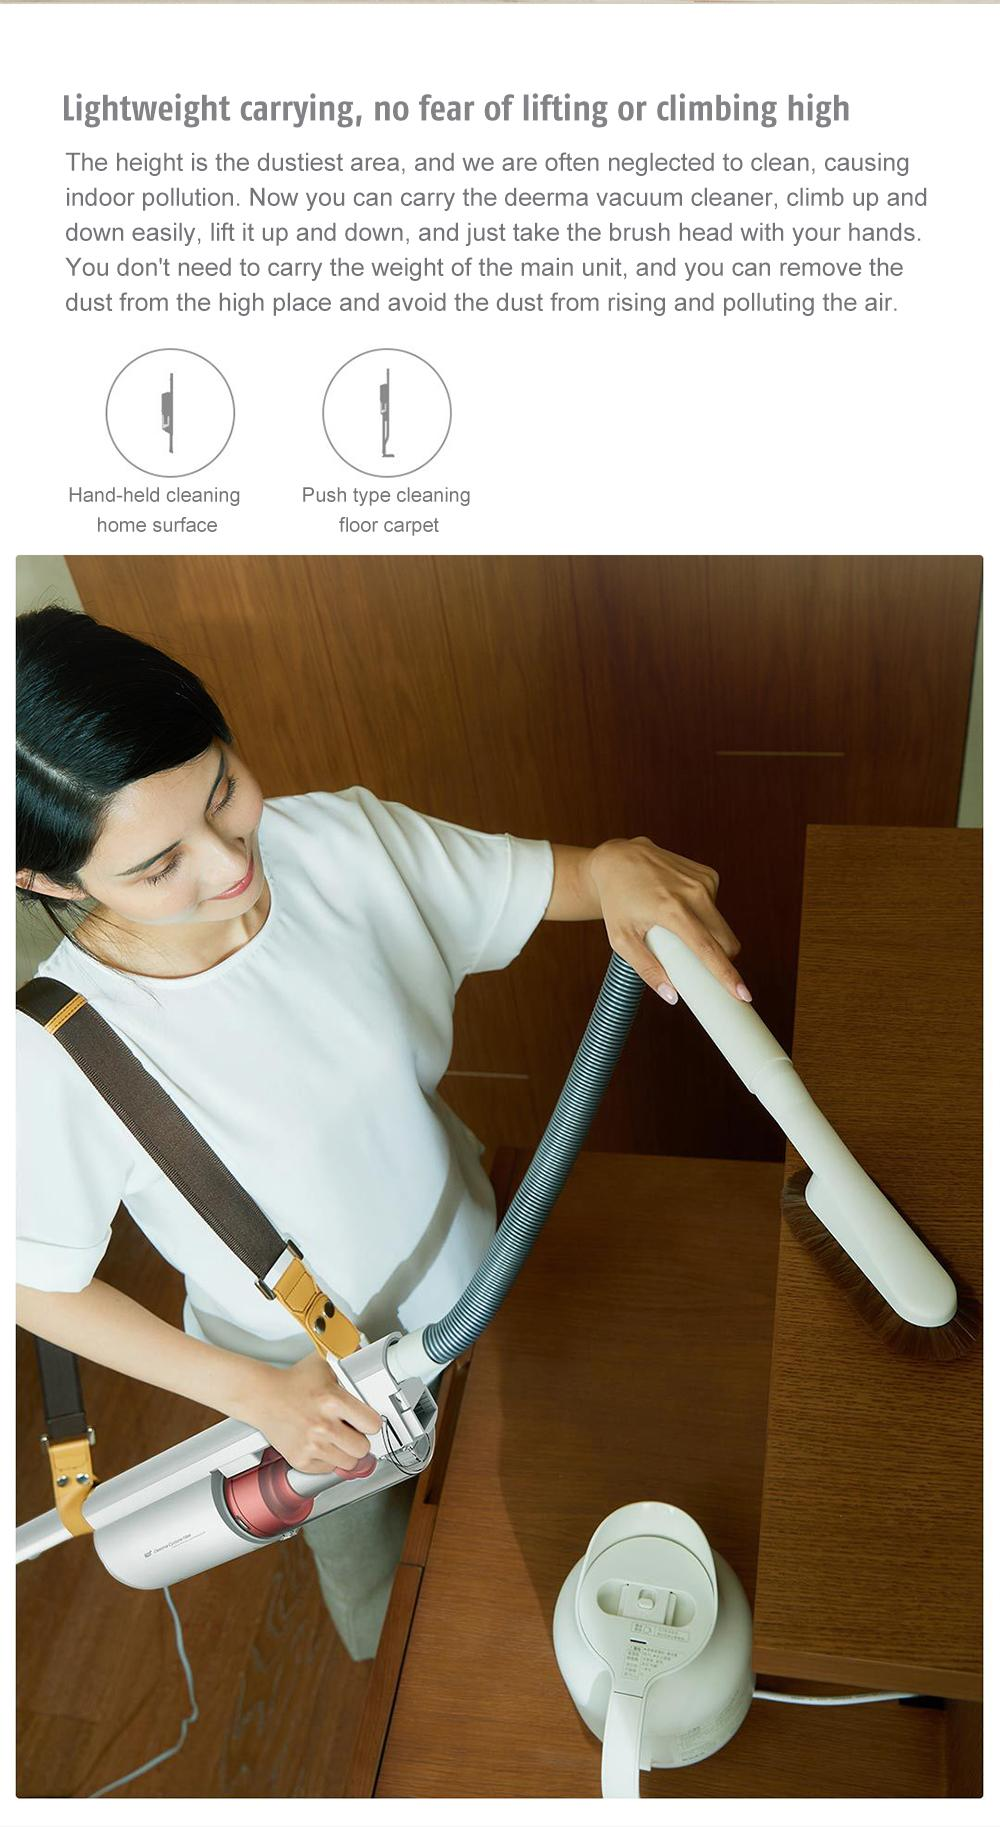 Deerma DX800S Multipurpose Double-circulation Upright Back Carrying Vacuum Cleaner